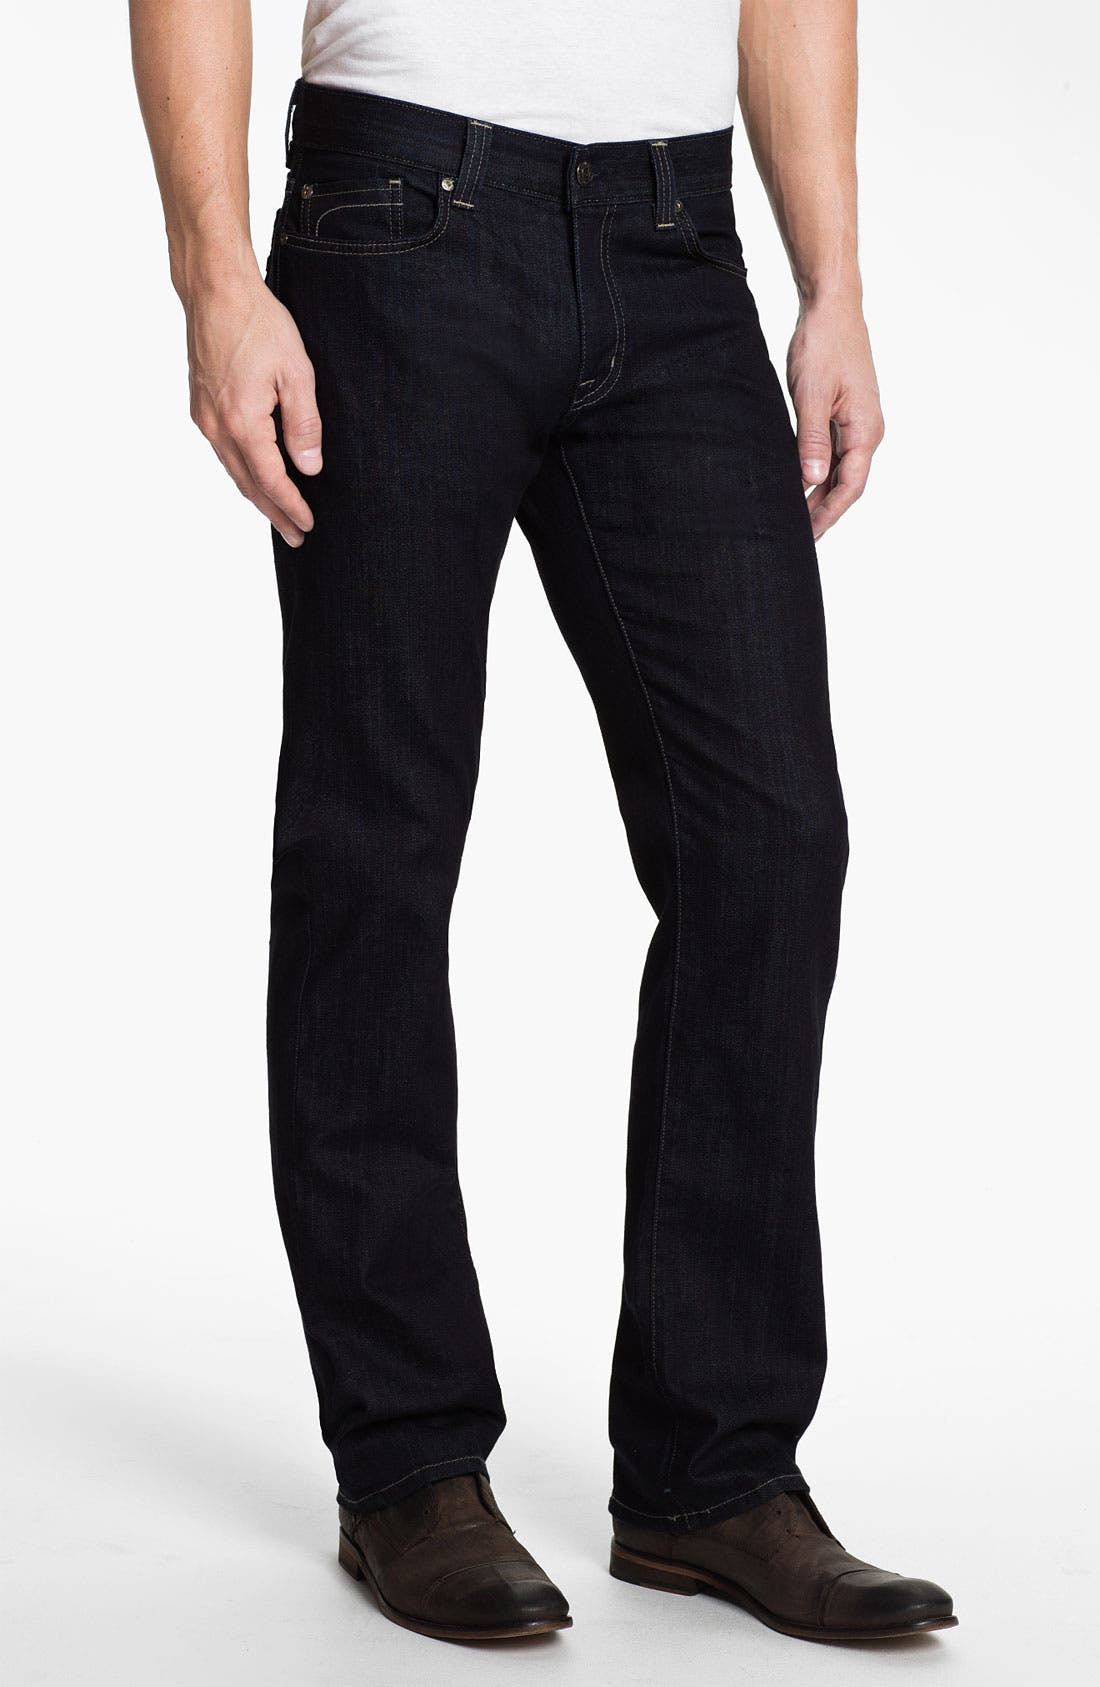 Alternate Image 1 Selected - Fidelity Denim '5011' Straight Leg Jeans (Pacific Rinse)